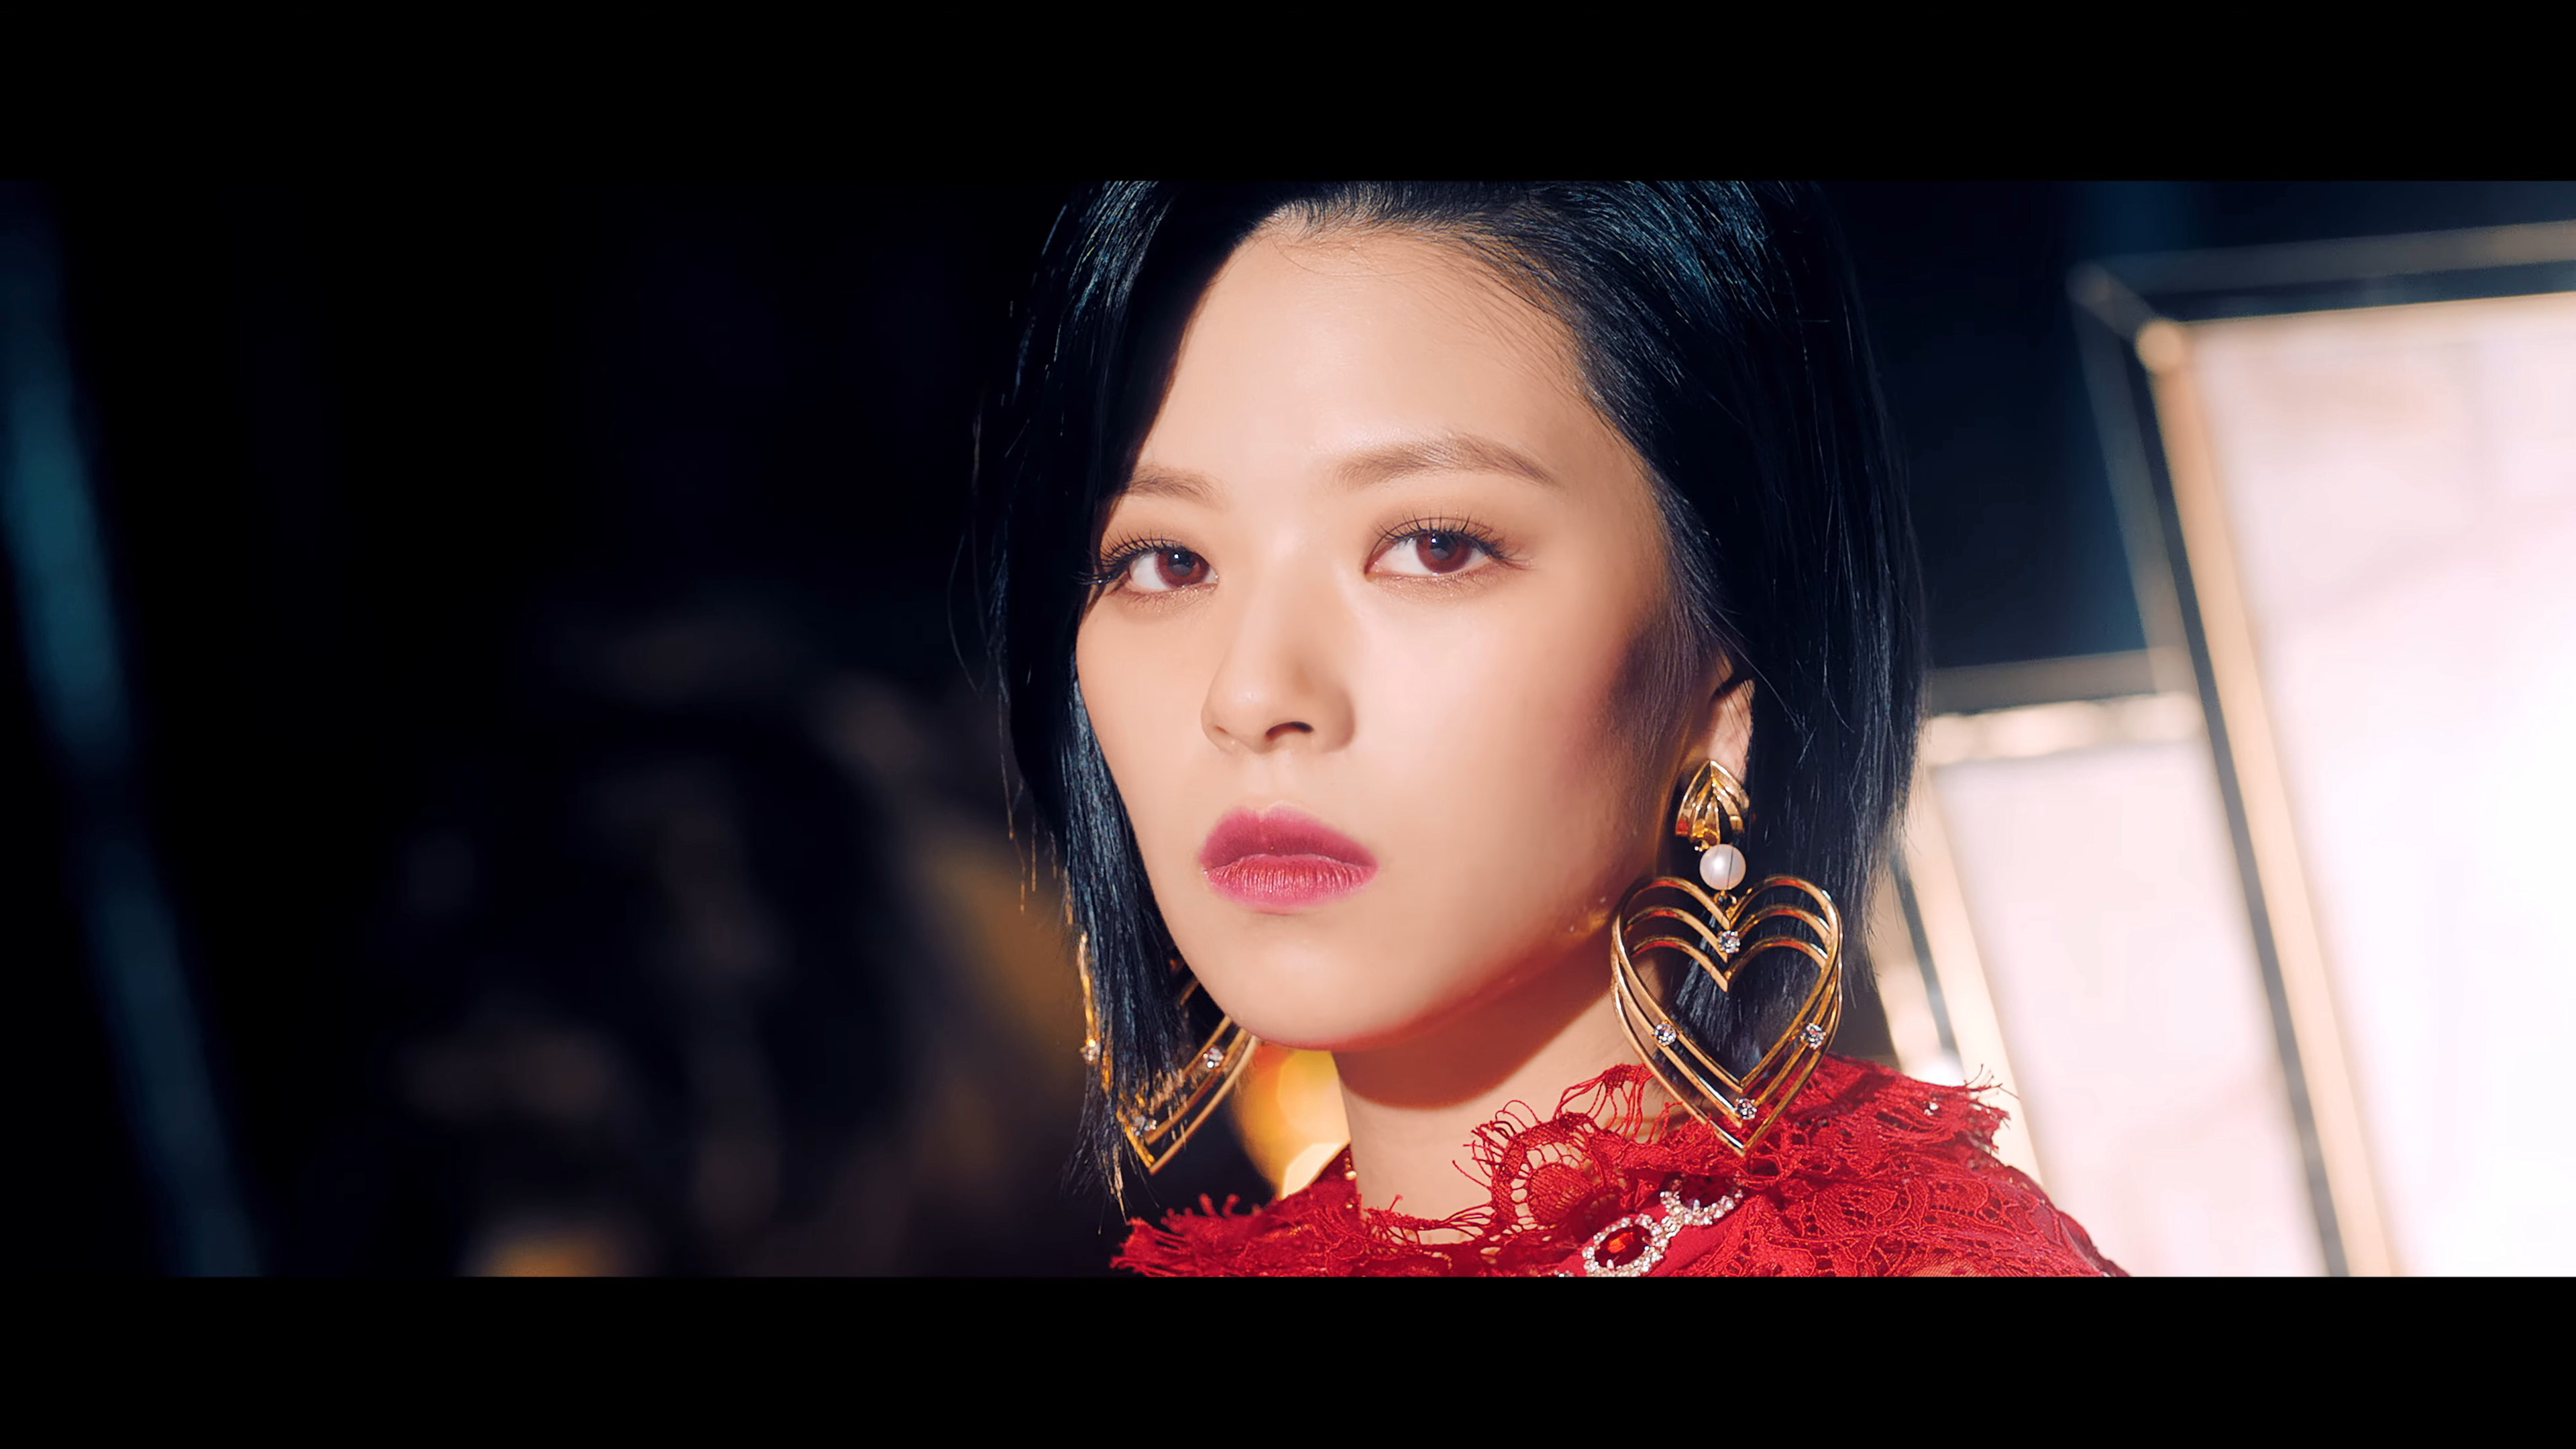 Twice Feel Special Jeongyeon MV Teaser Screencaps (HD/HR)